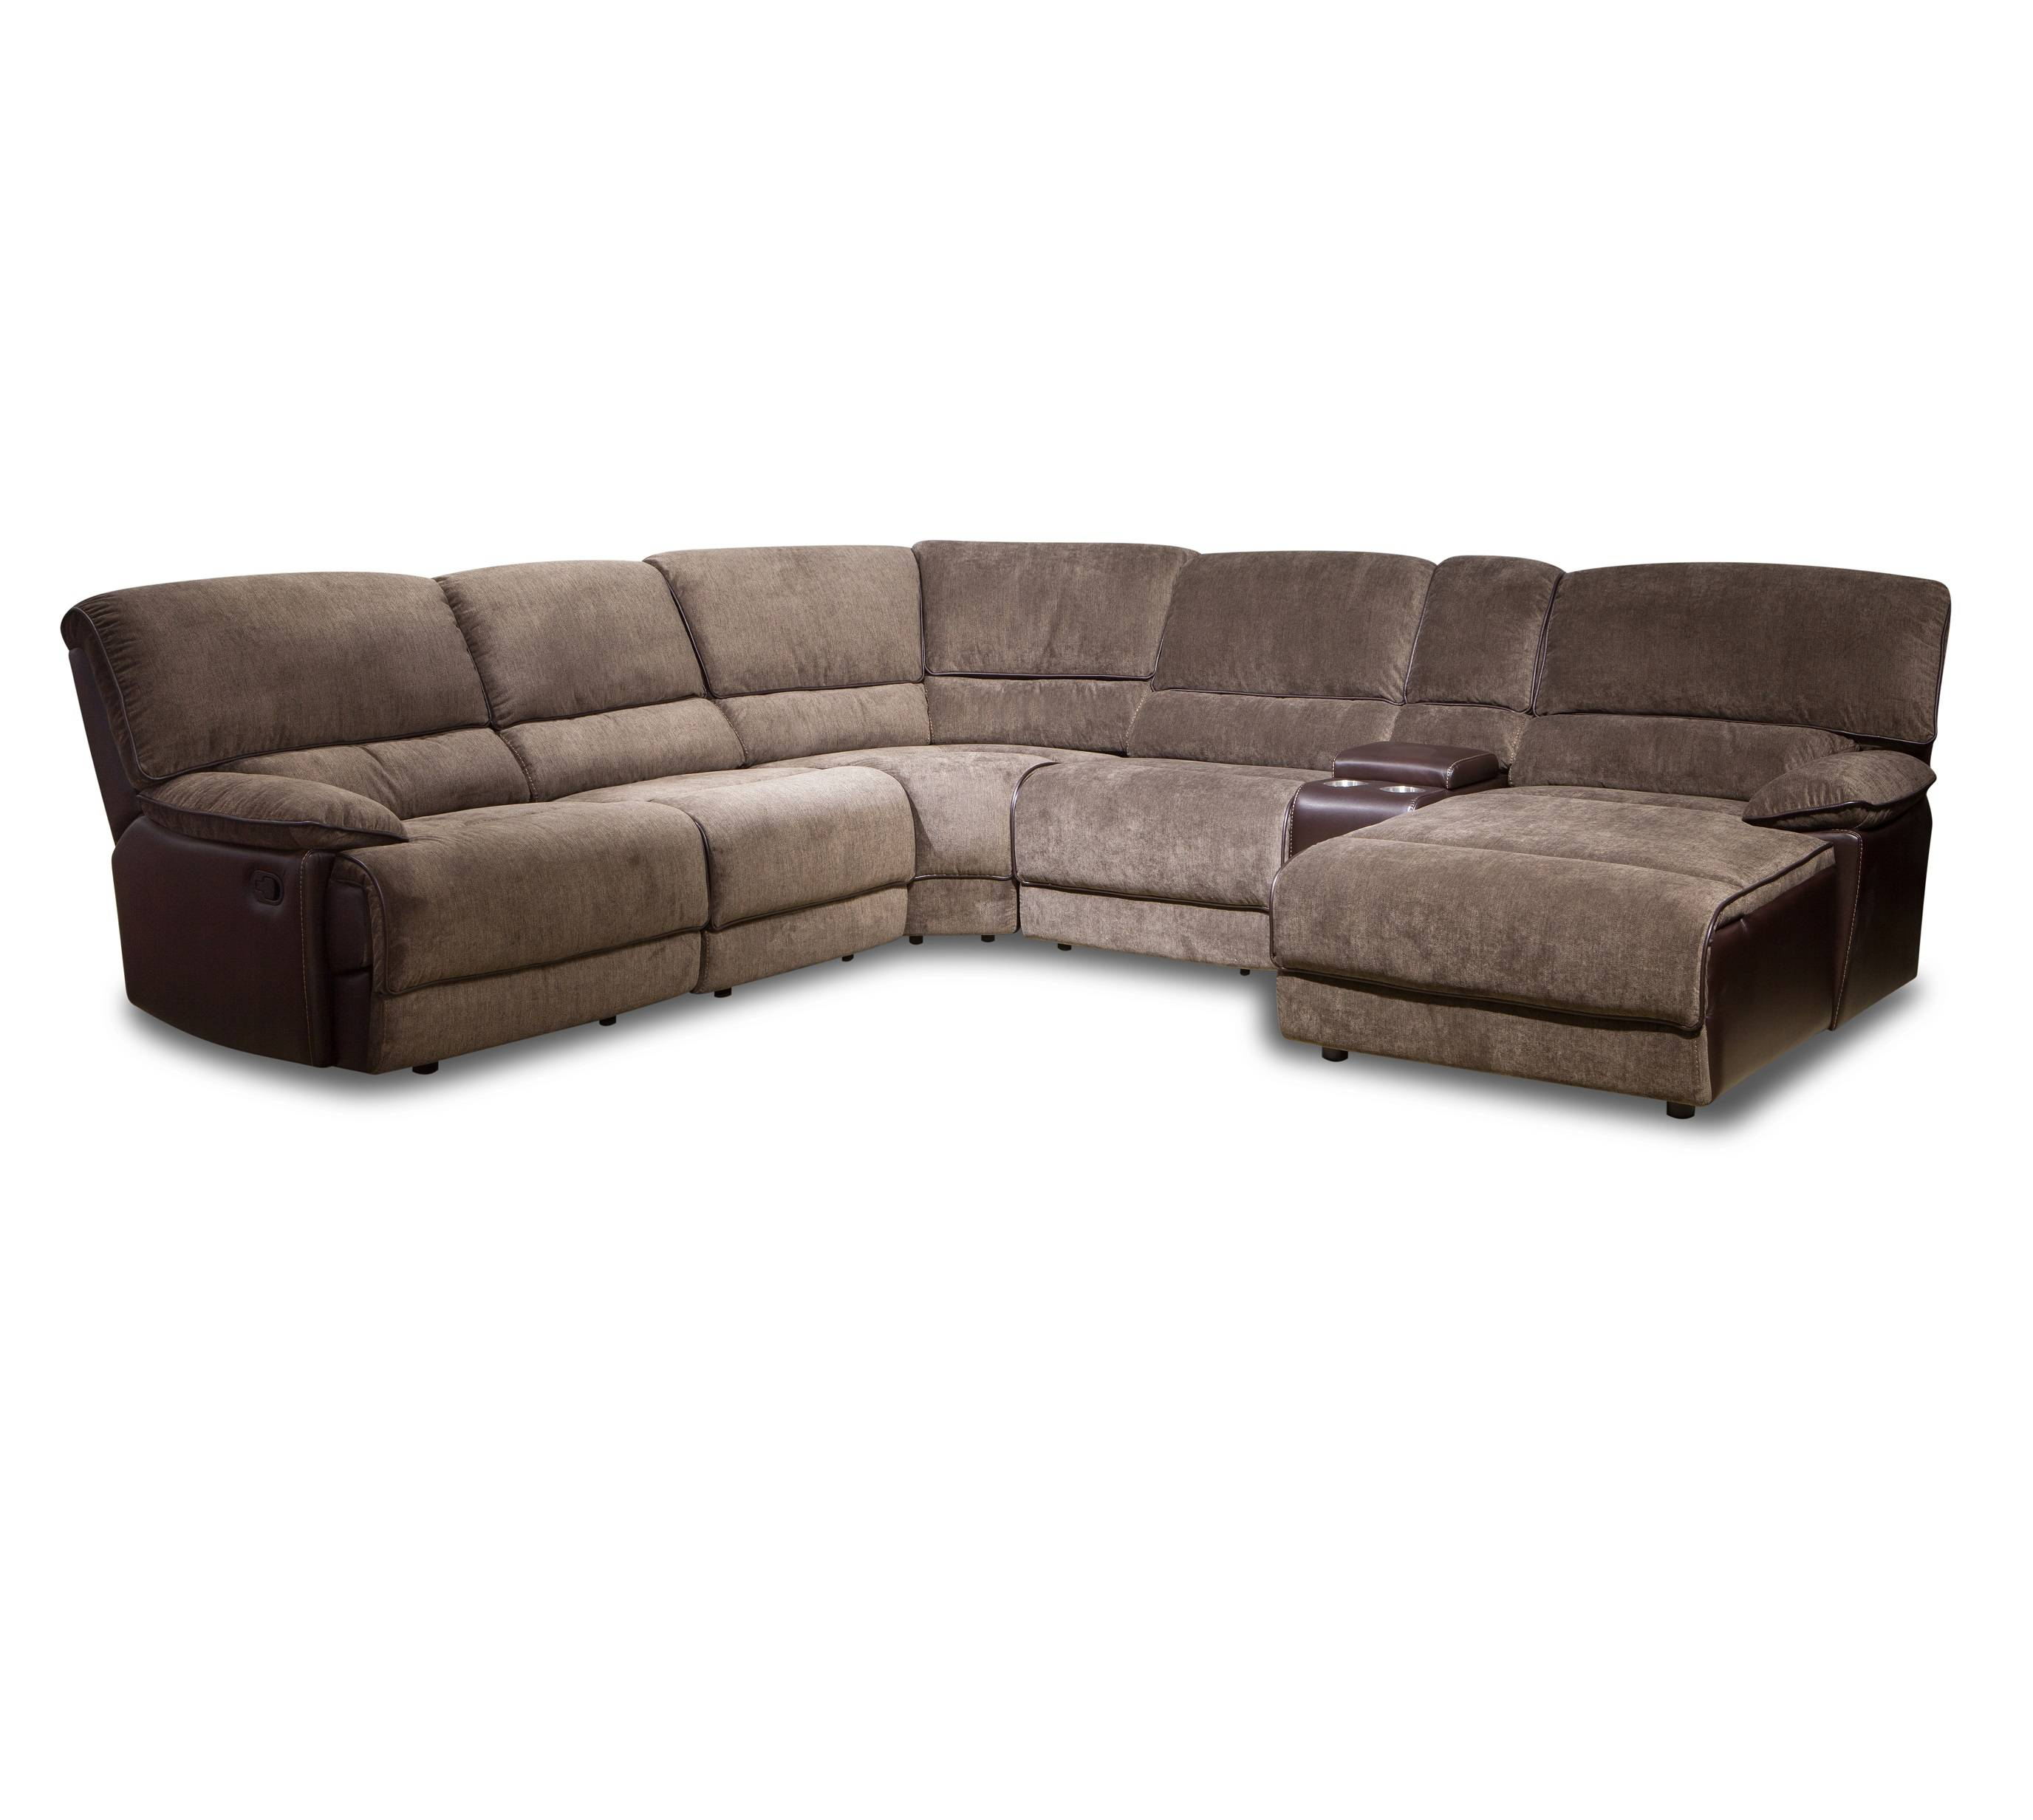 American style fancy relax fabric recliner sectional sofa with cup holder